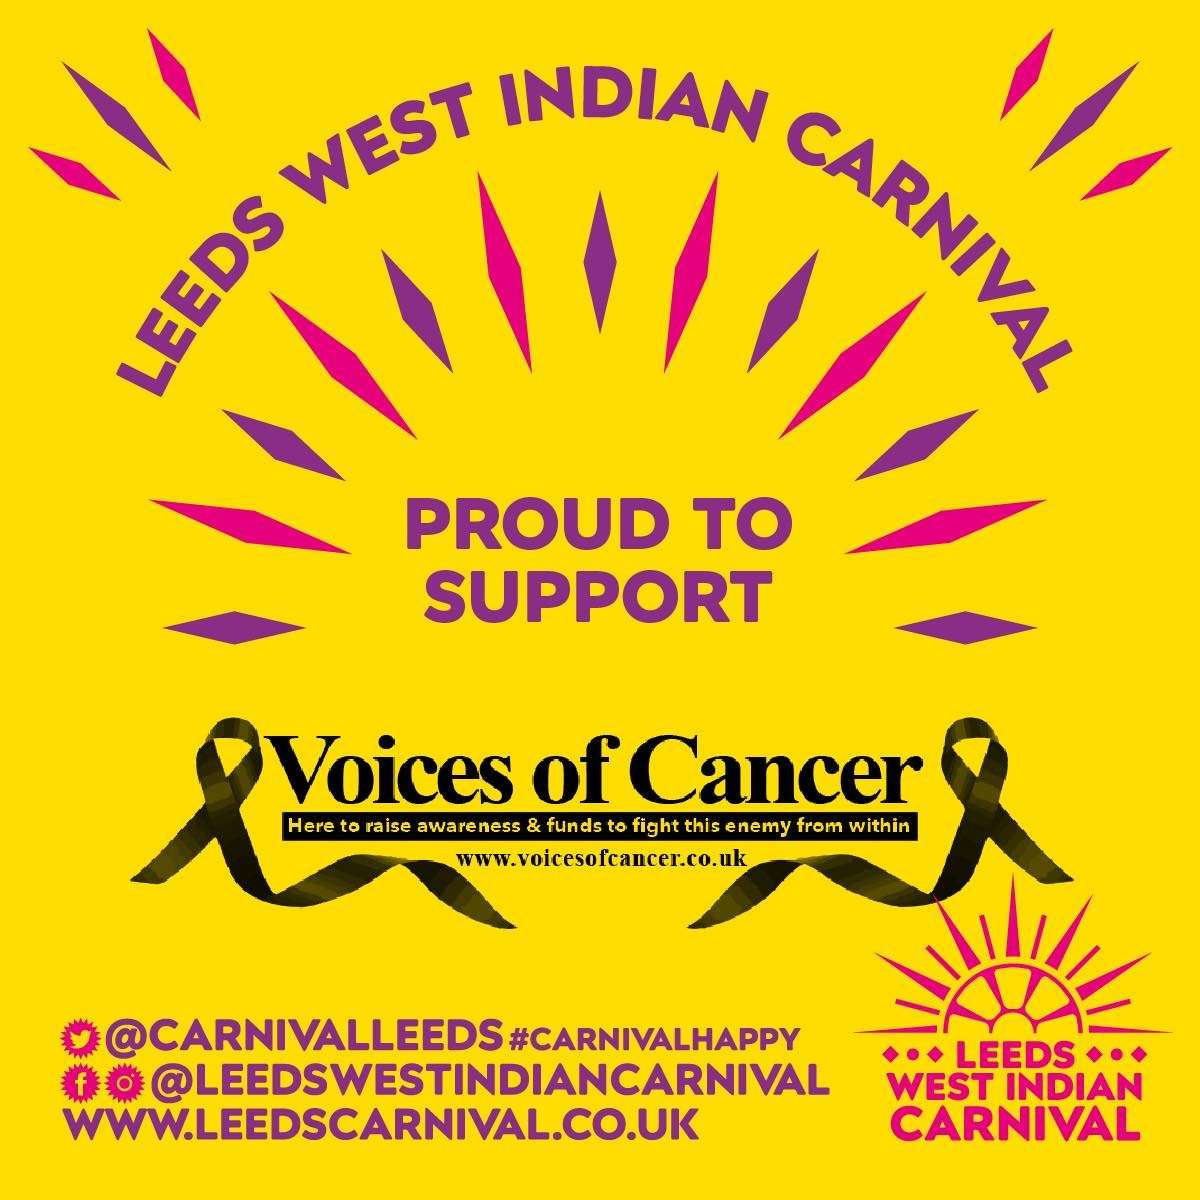 Leeds Carnival Supports Voices Of Cancer